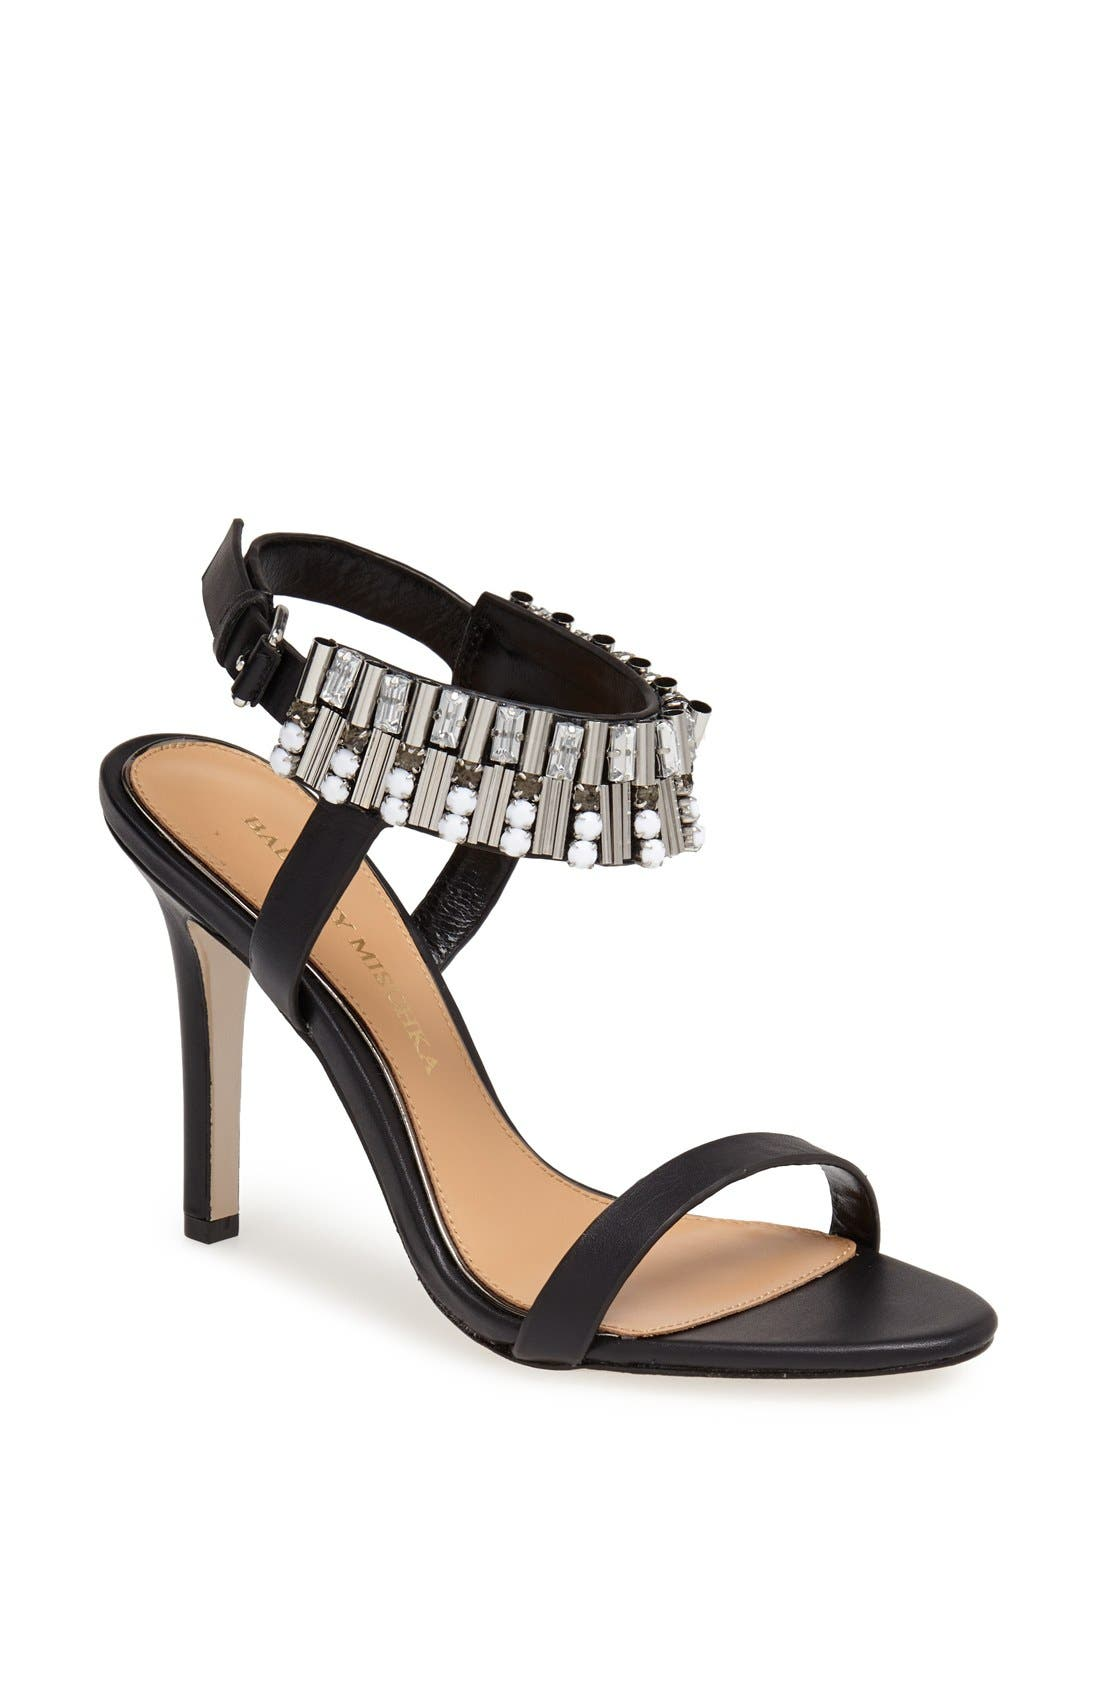 Main Image - Badgley Mischka 'Kallan' Crystal Cuff Leather Sandal